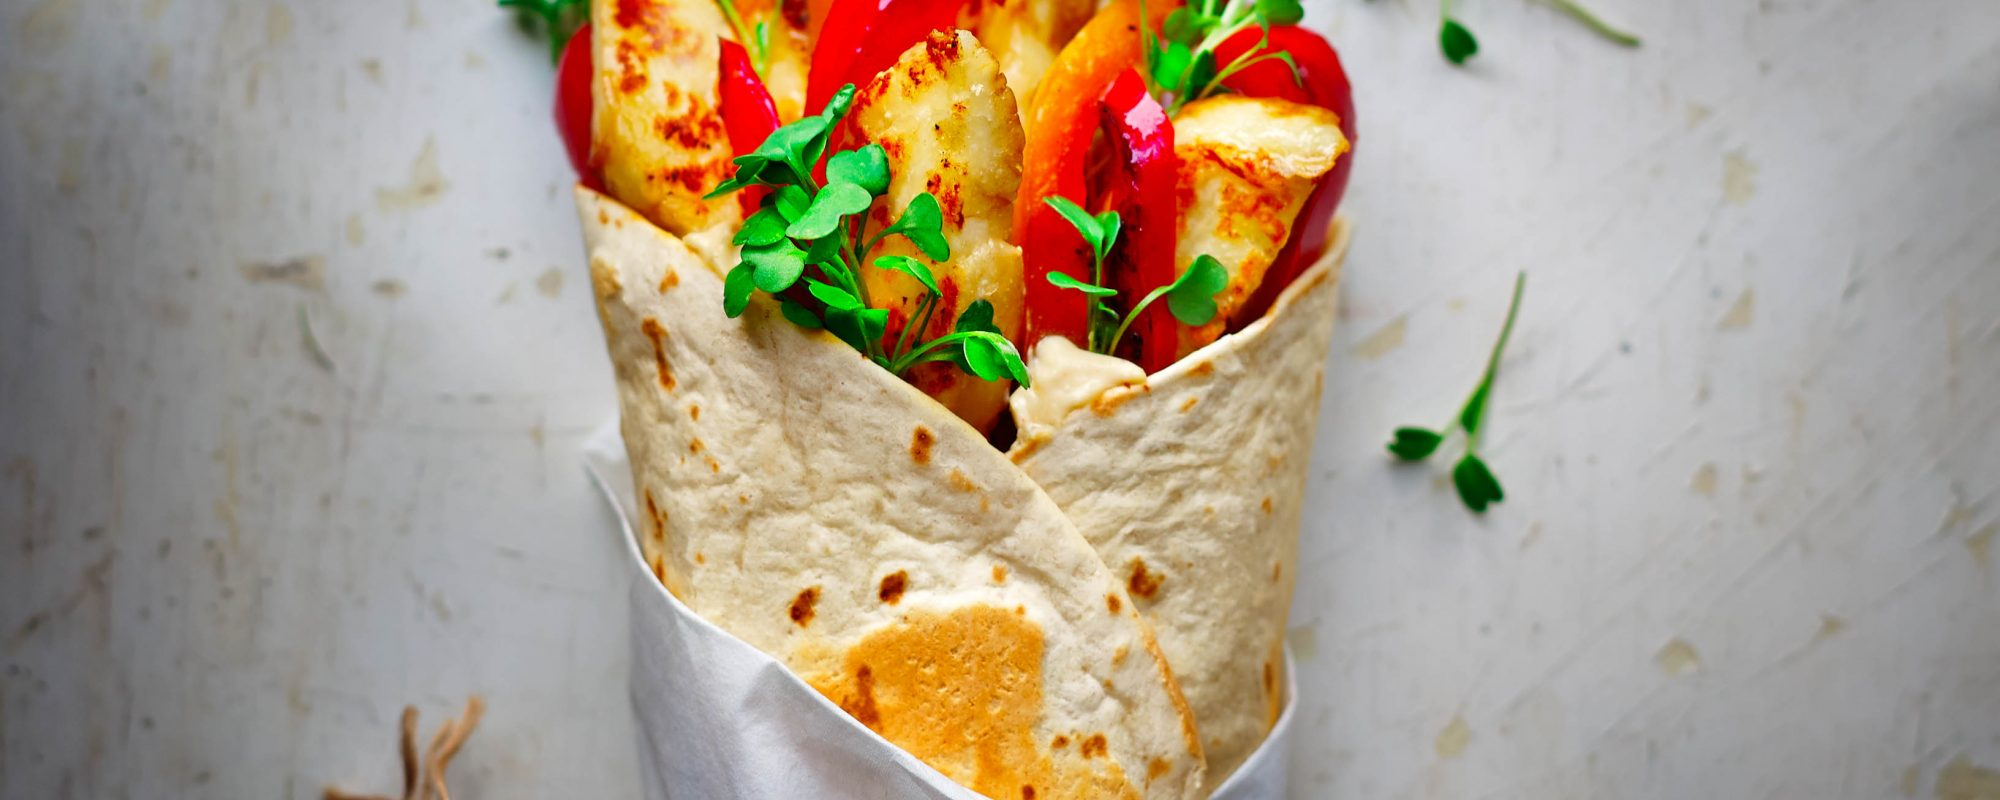 Halloumi wrap with salad cress